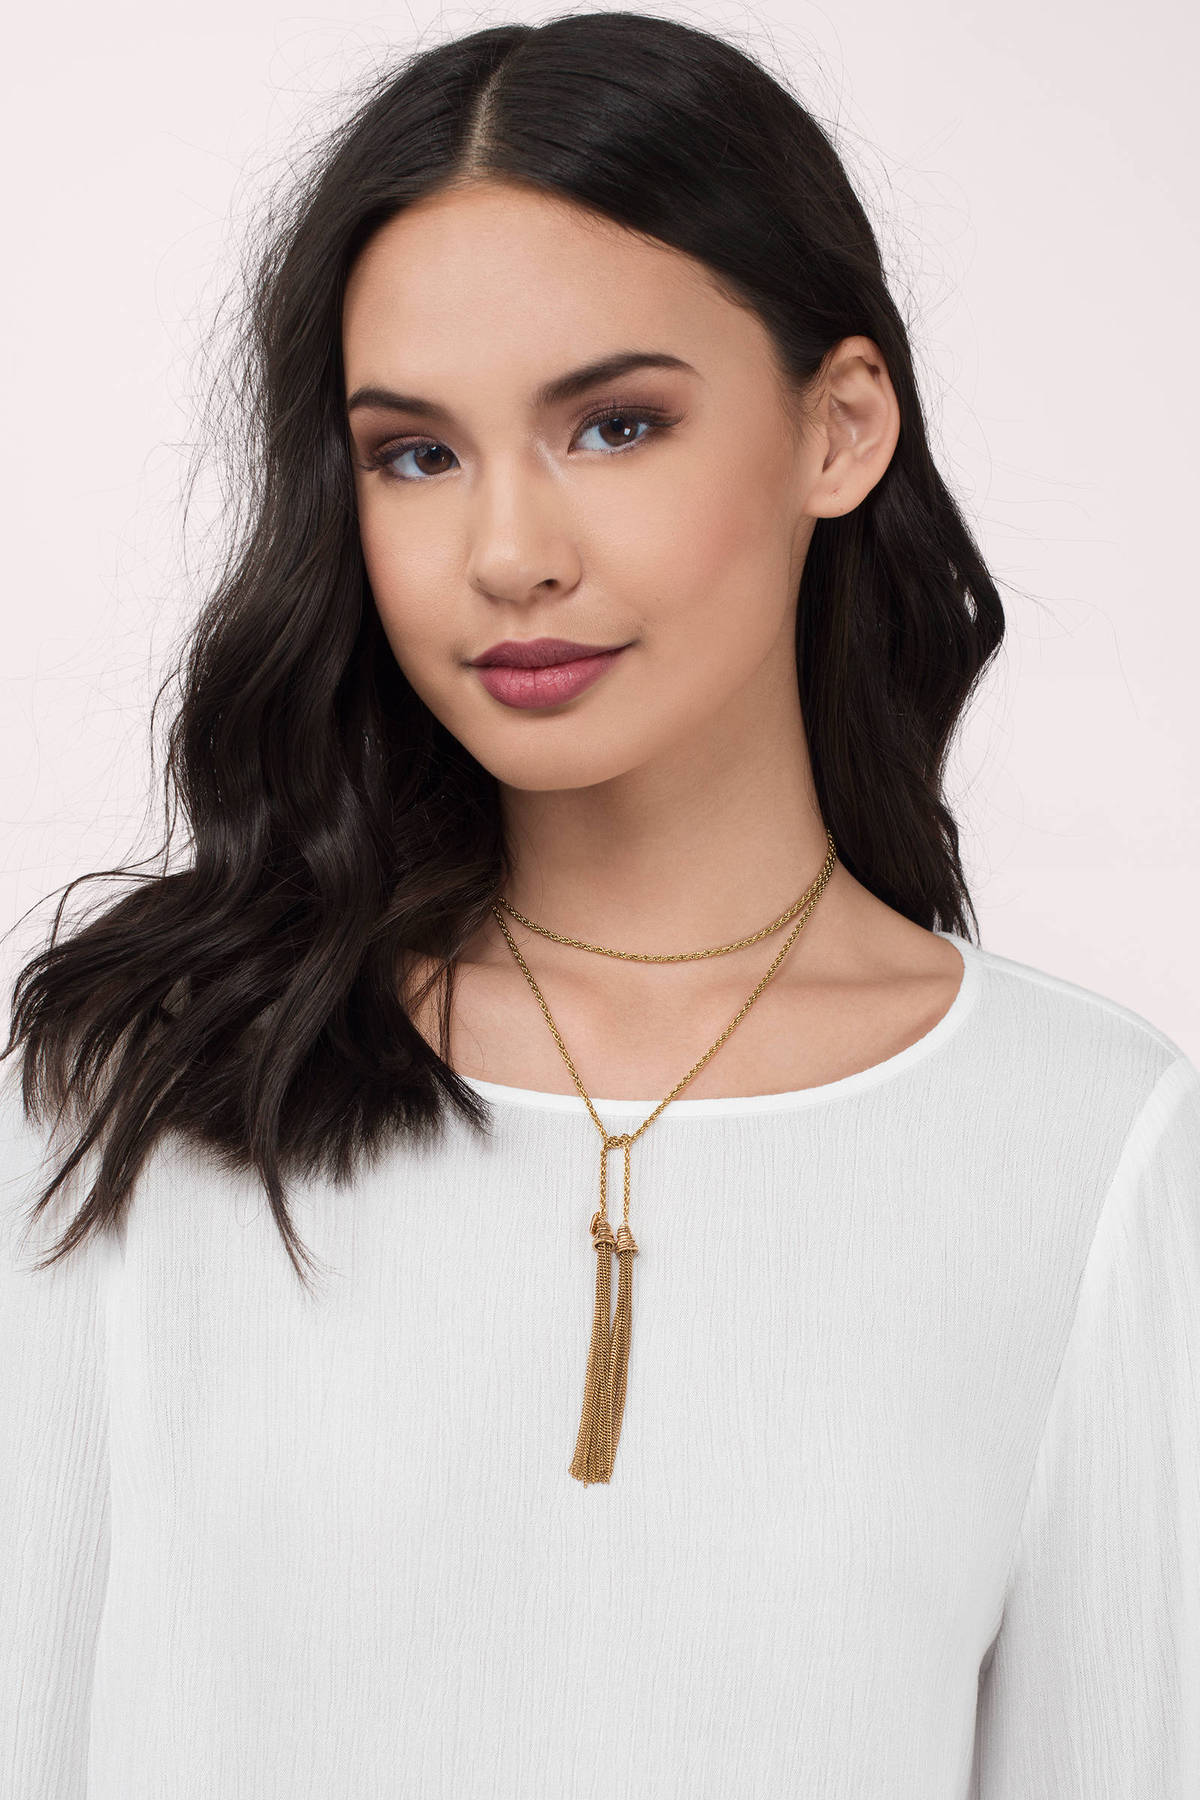 gold-the-keiko-gold-lariat-necklace@2x.jpg